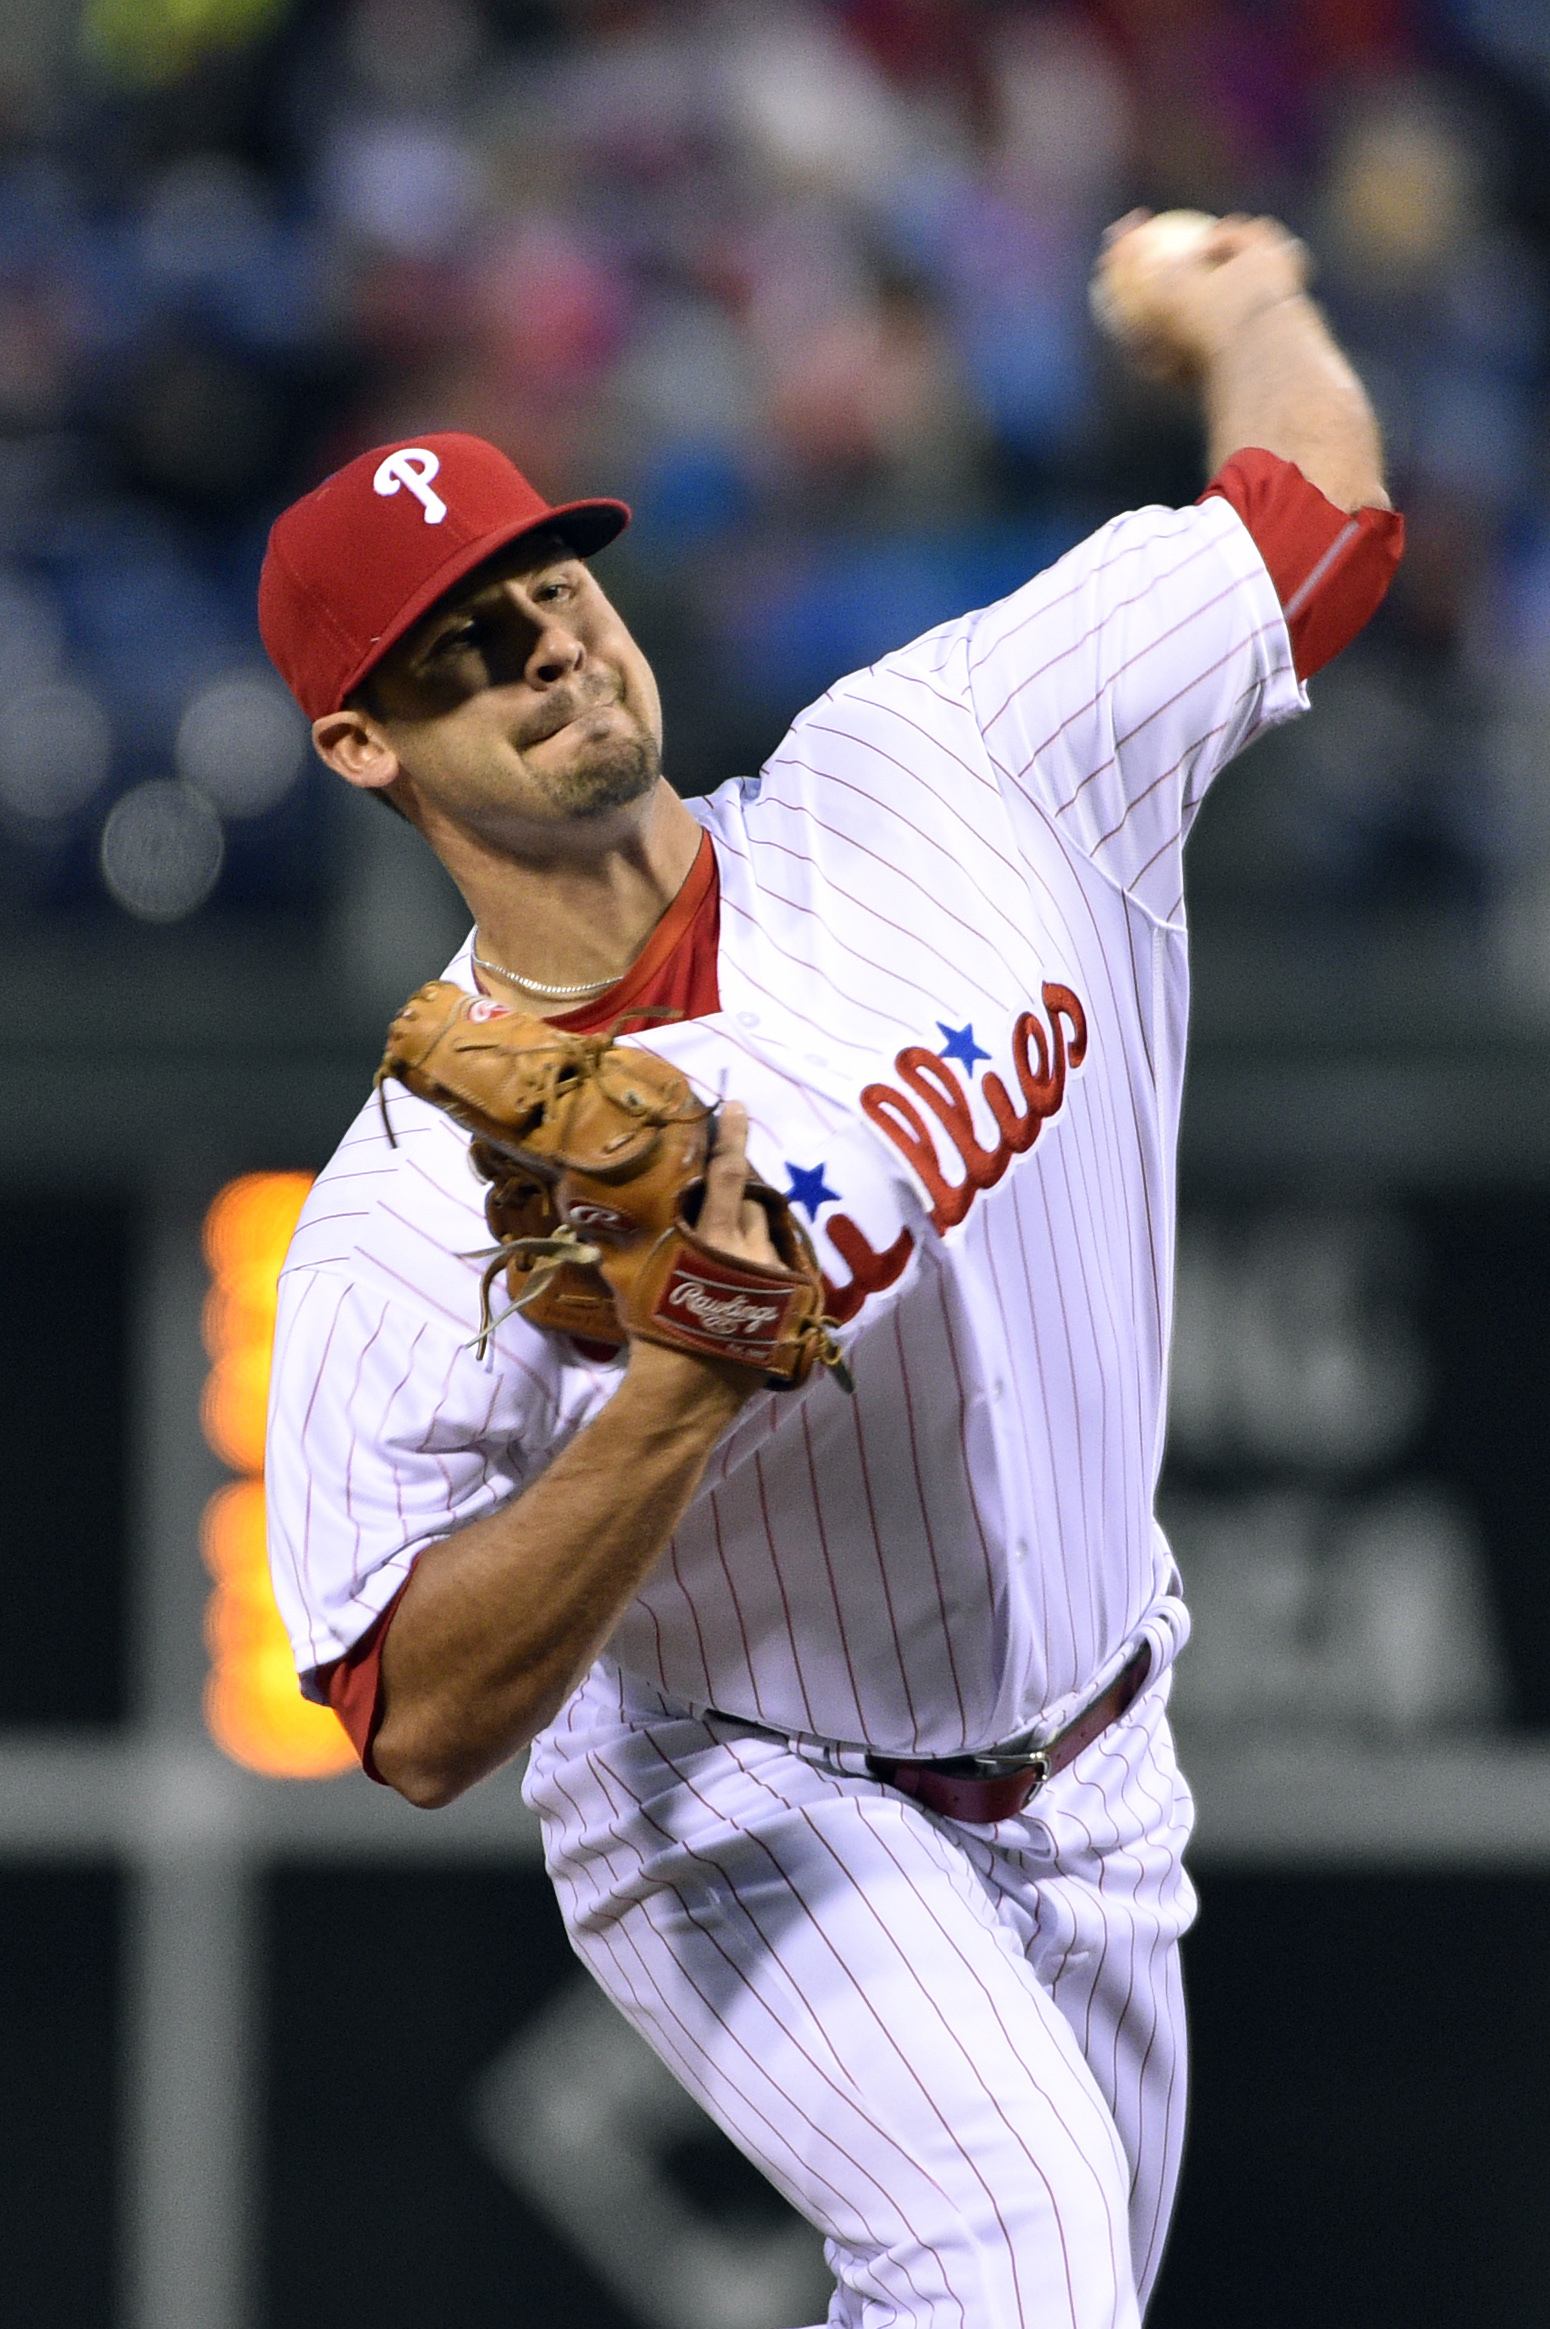 Philadelphia Phillies starting pitcher Adam Morgan throws during the third inning of a baseball game against the Cleveland Indians, Friday, April 29, 2016, in Philadelphia. (AP Photo/Derik Hamilton)